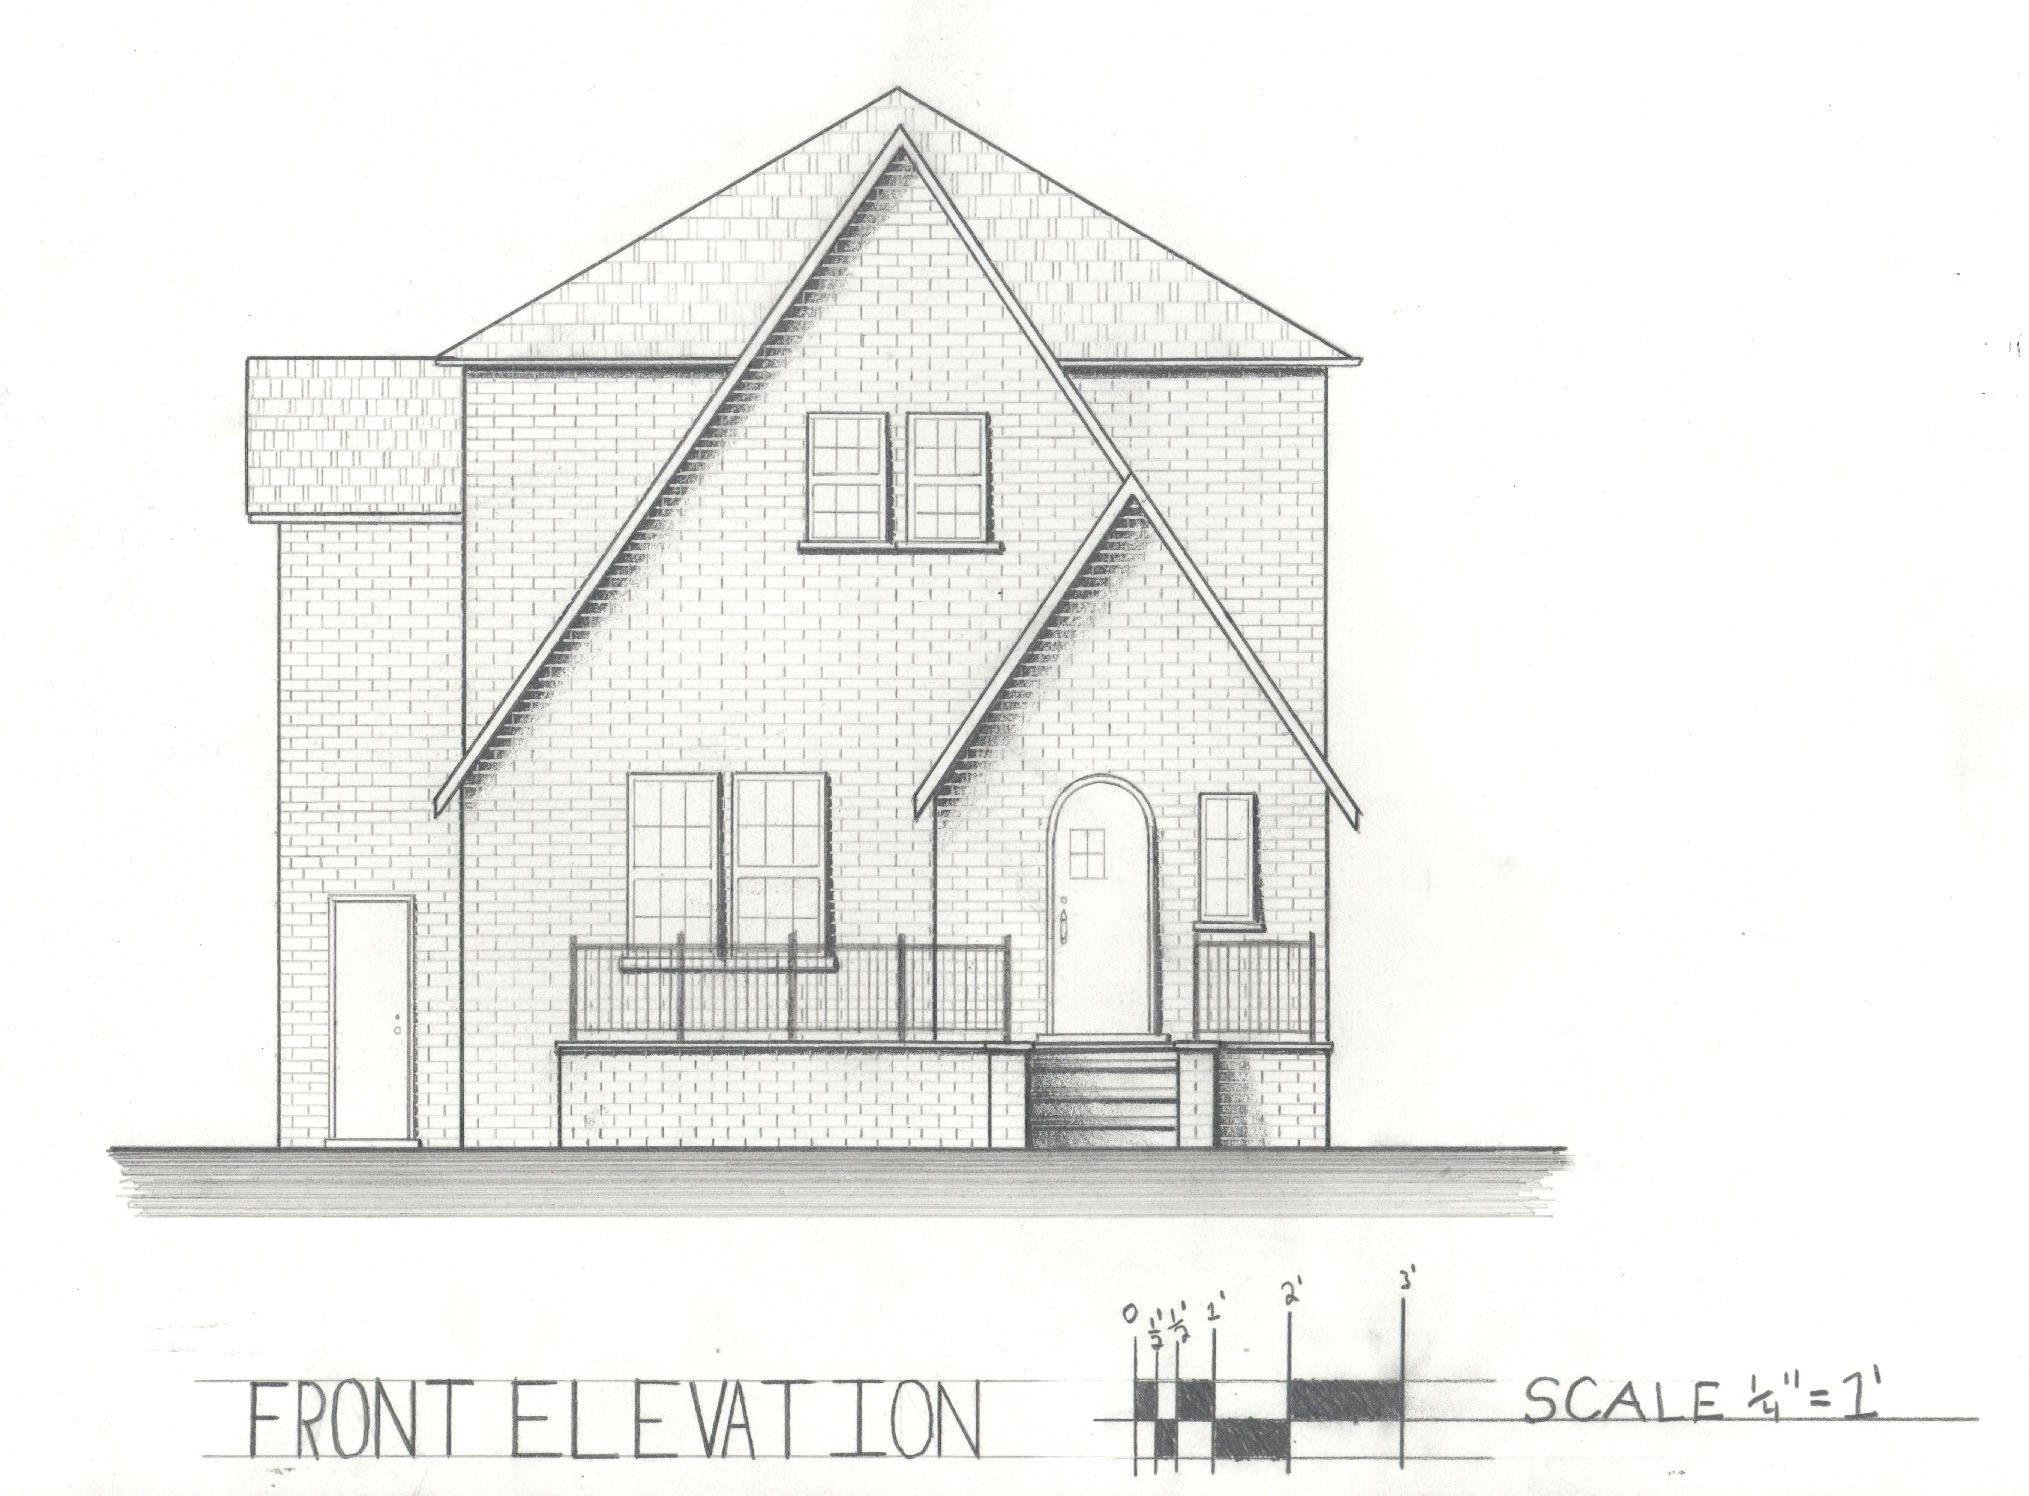 Home Front Elevation Drawings : Exterior elevation drawings ideas architecture plans